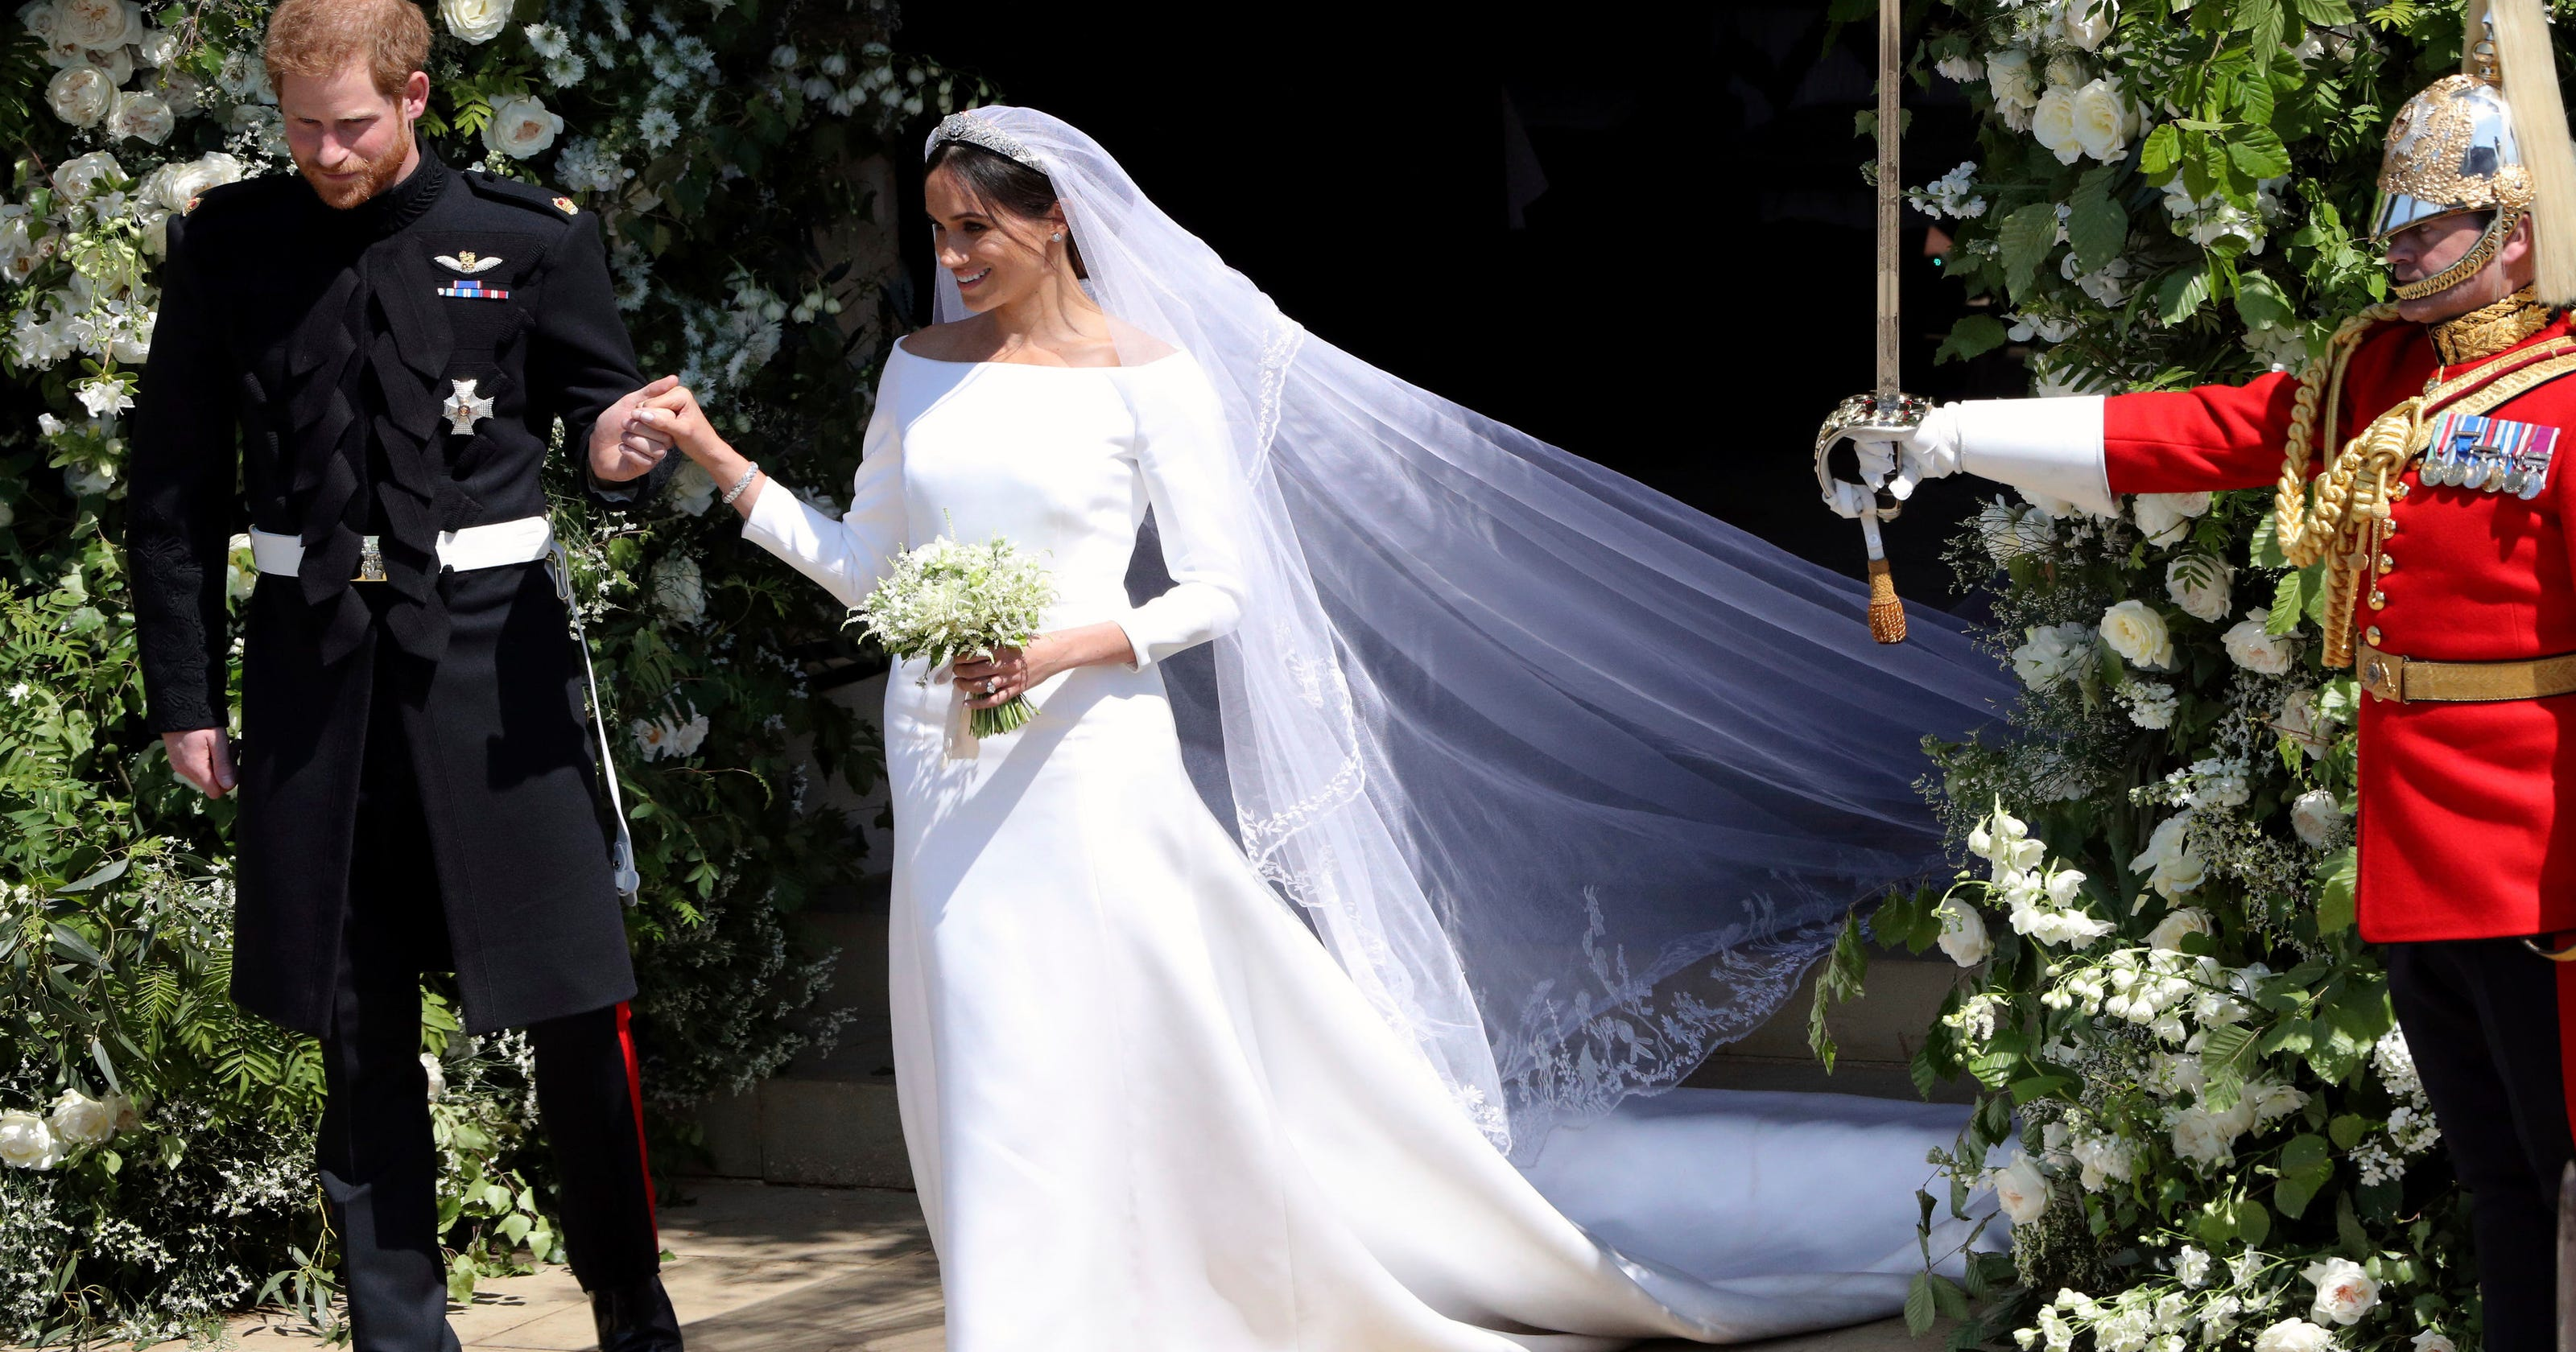 b293f1c7a8 Meghan Markle s royal wedding gown knockoffs ready to take off